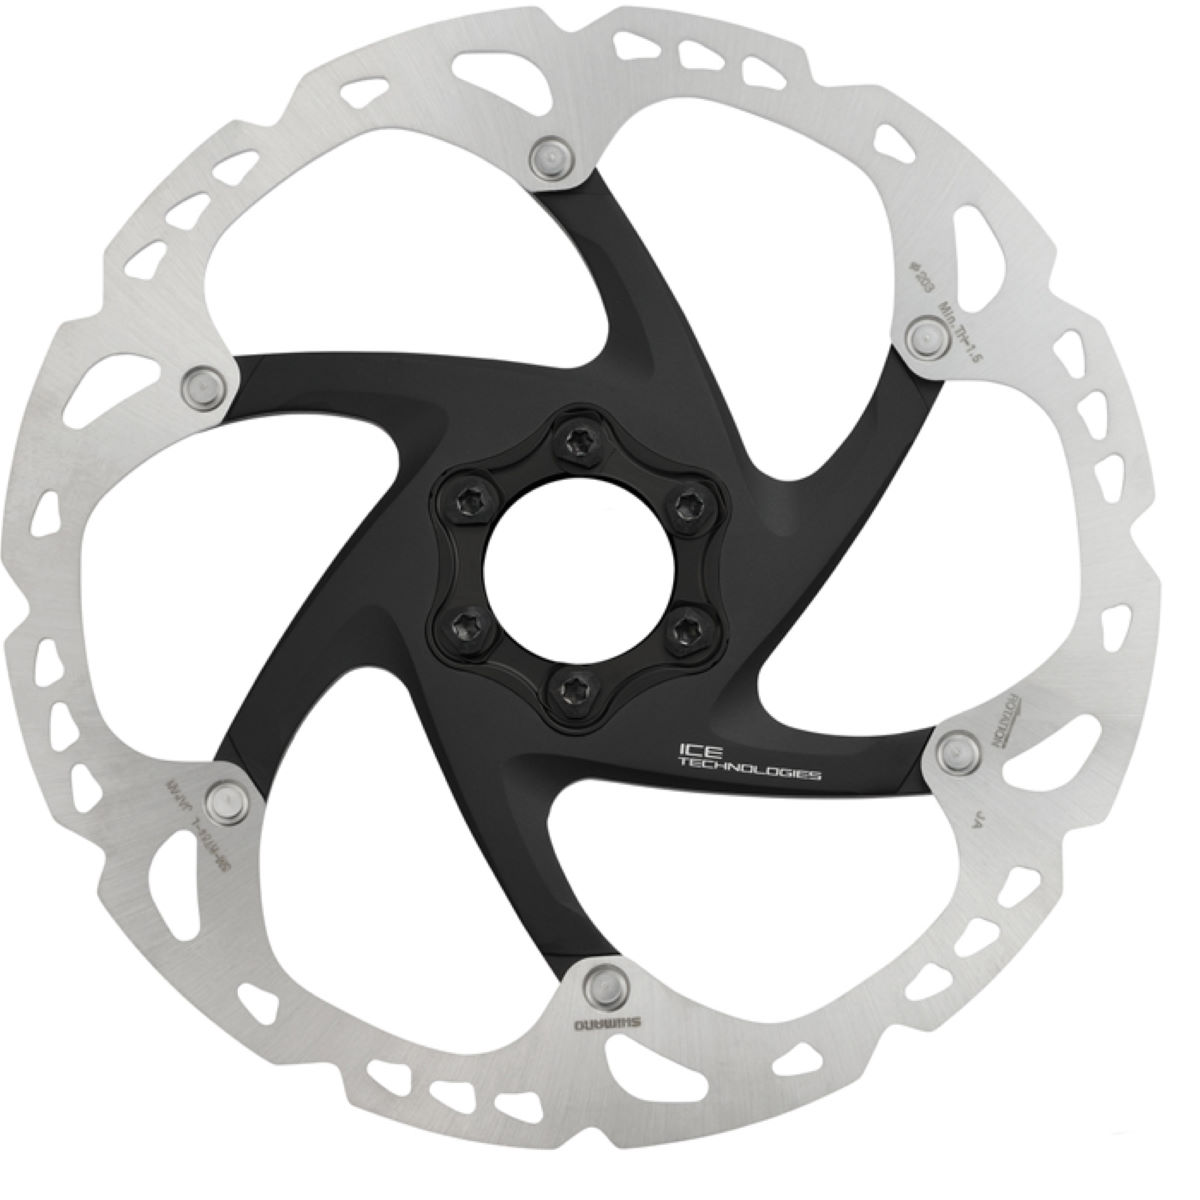 Disque Shimano XT RT86 Ice-Tec (6 trous, 180 mm) - 180mm 6-Bolt Silver Grey/Black Disques de freins